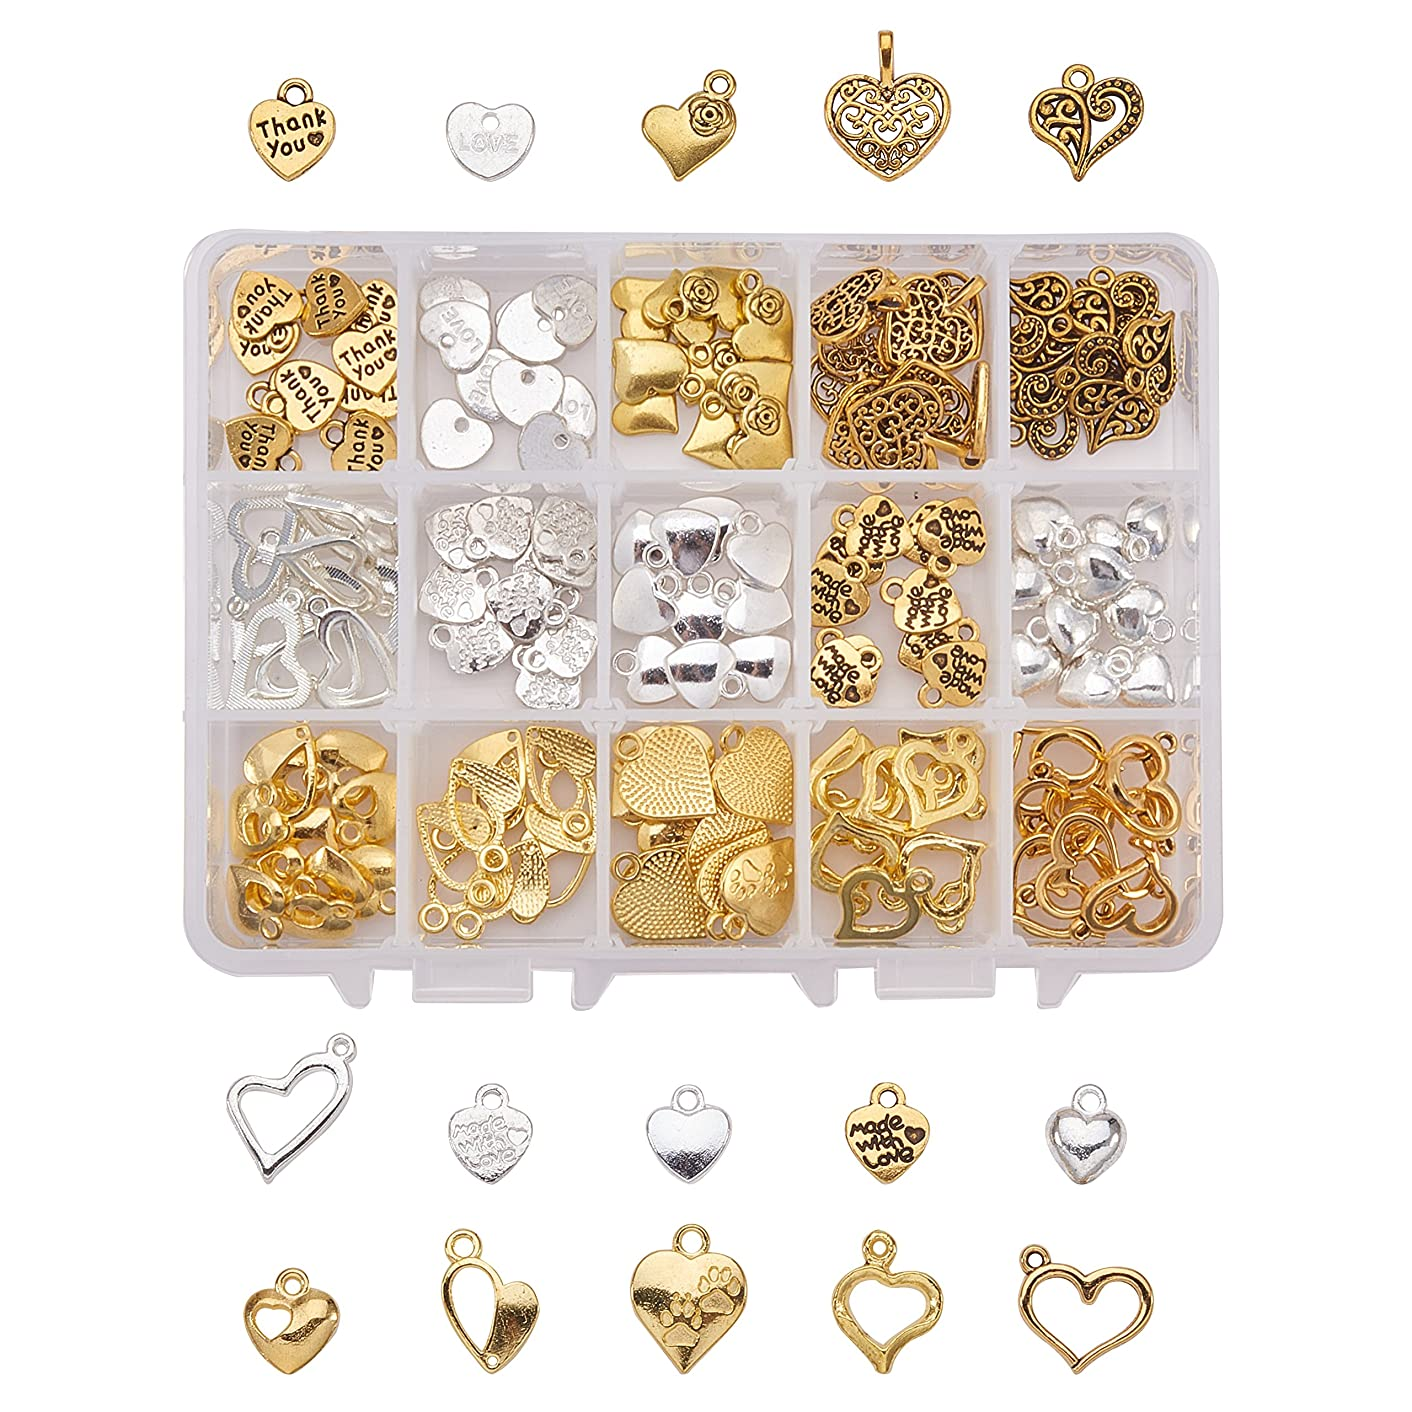 PandaHall Elite About 150 Pcs Tibetan Style Alloy Heart Charm Pendants 15 Styles for Jewelry Making Silver and Gold